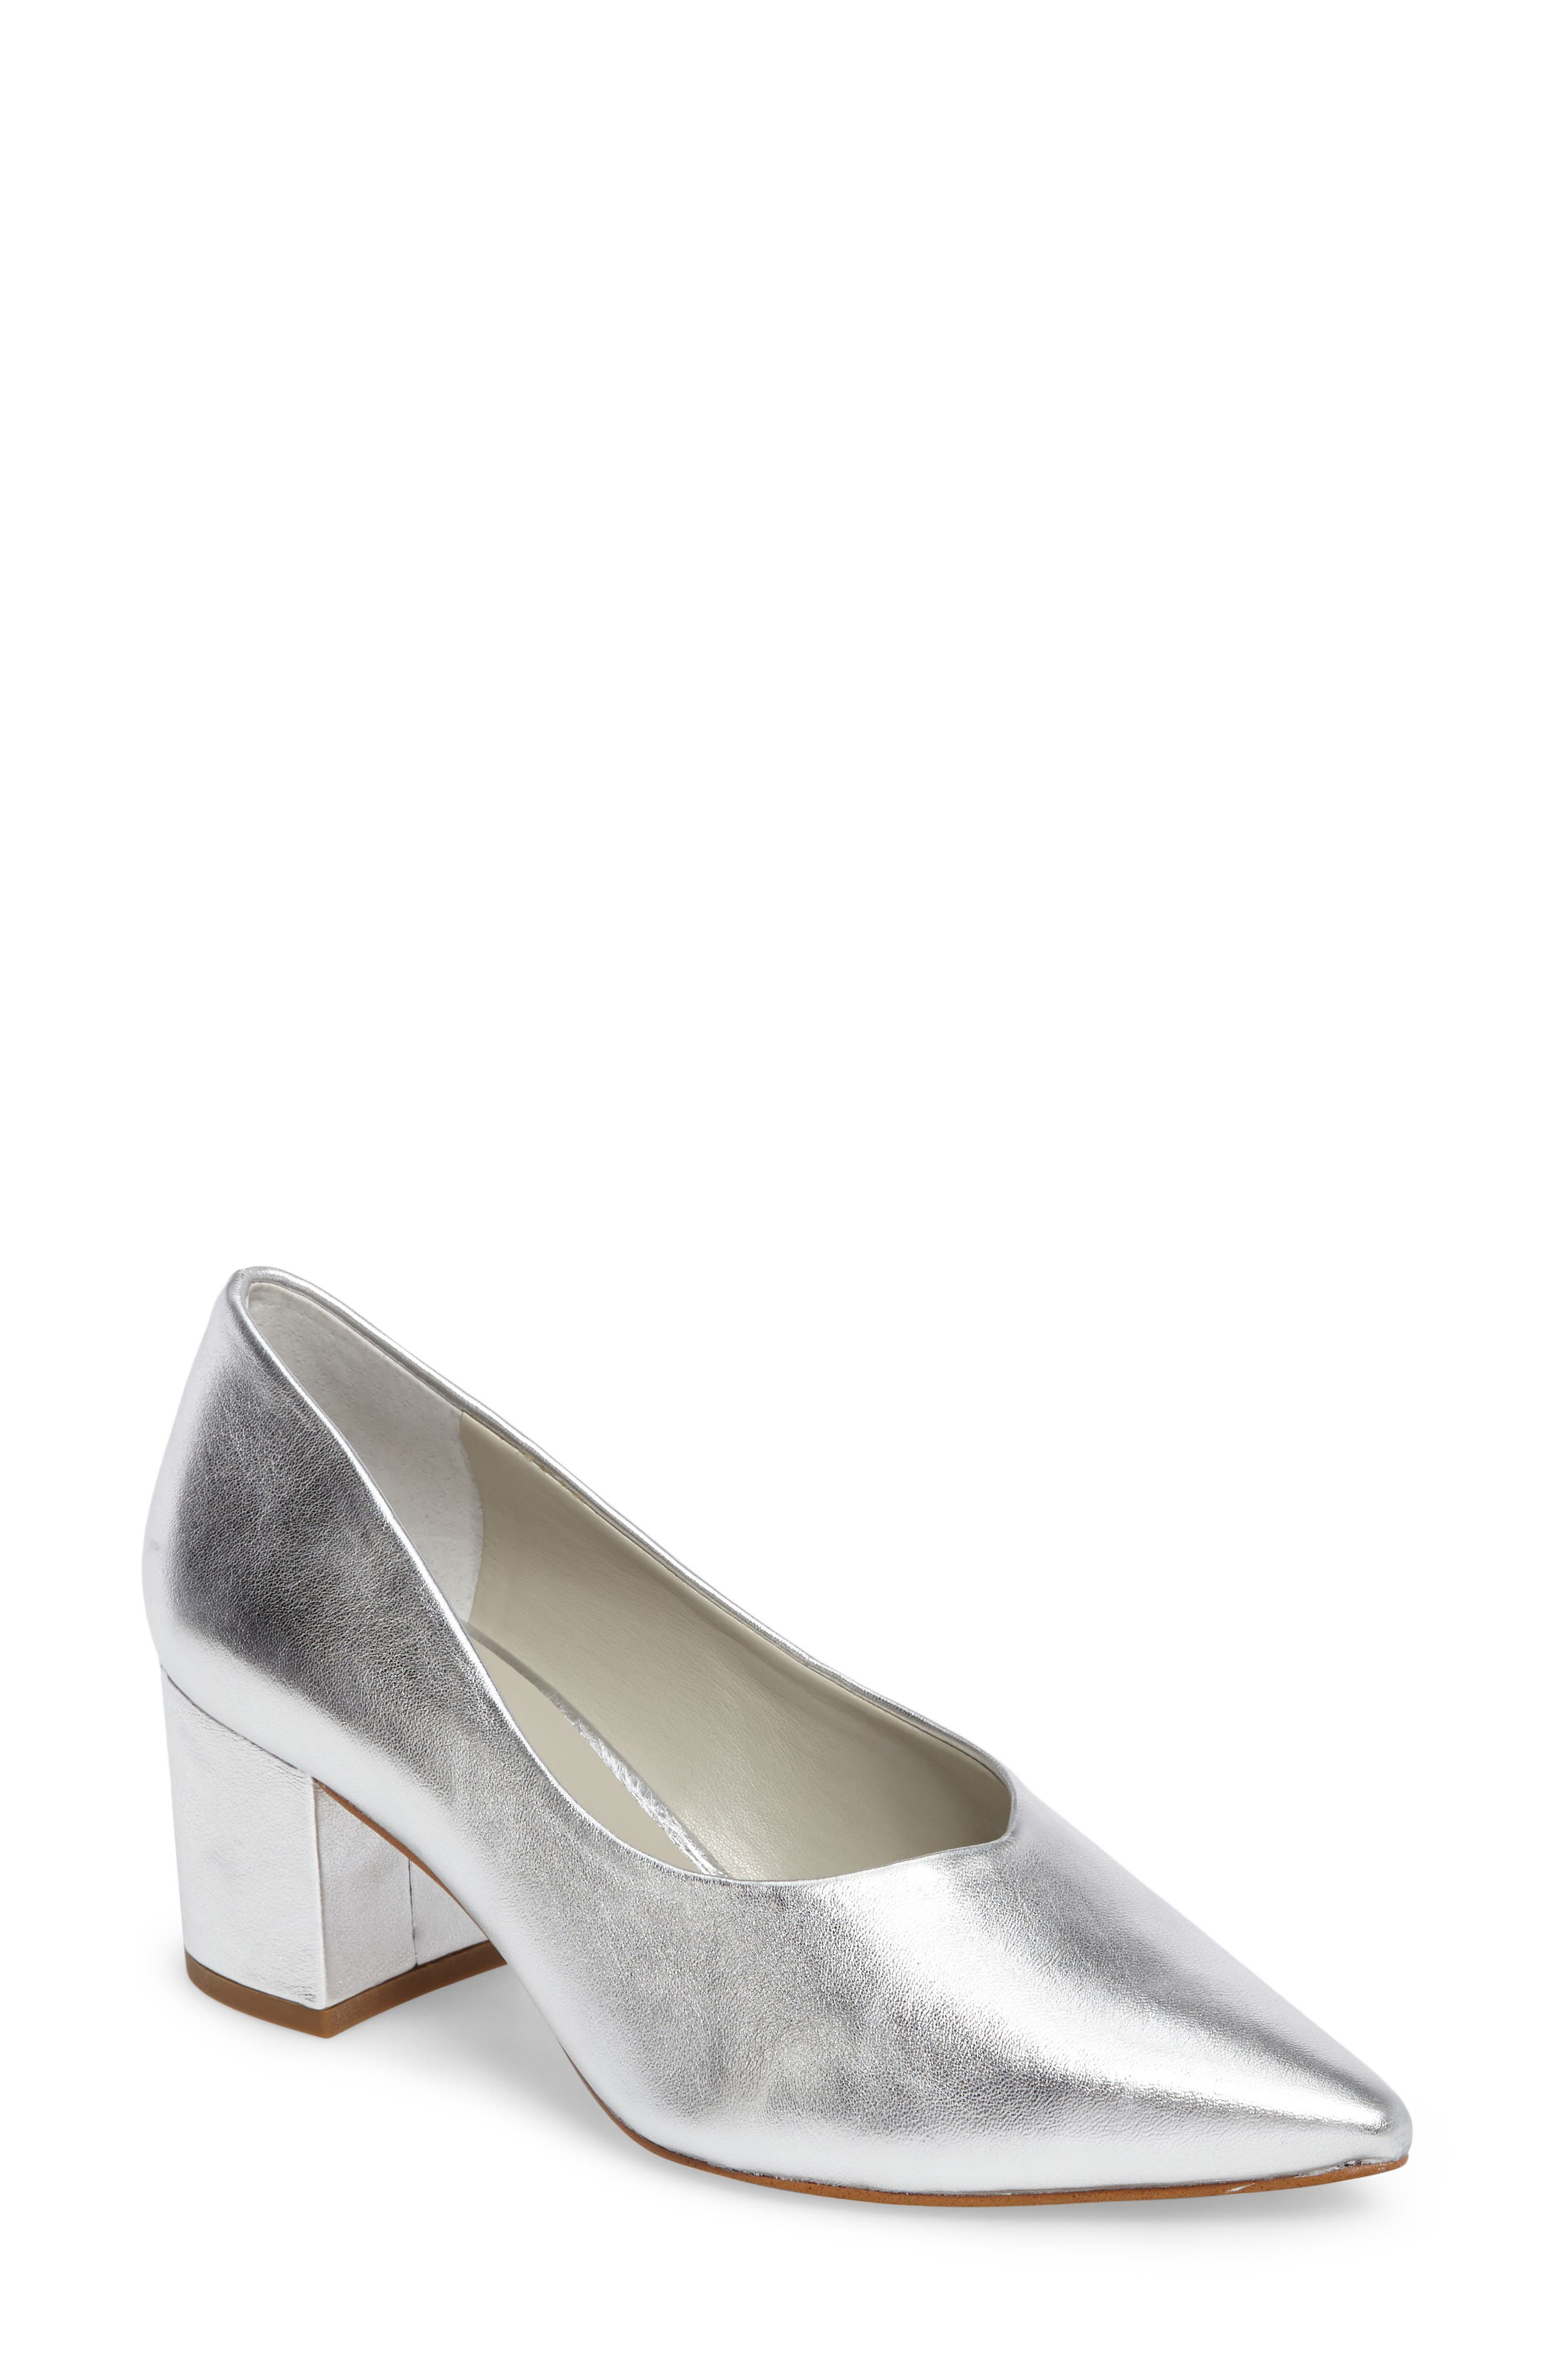 Jact Pointy Toe Pump,                         Main,                         color, Bright Silver Leather